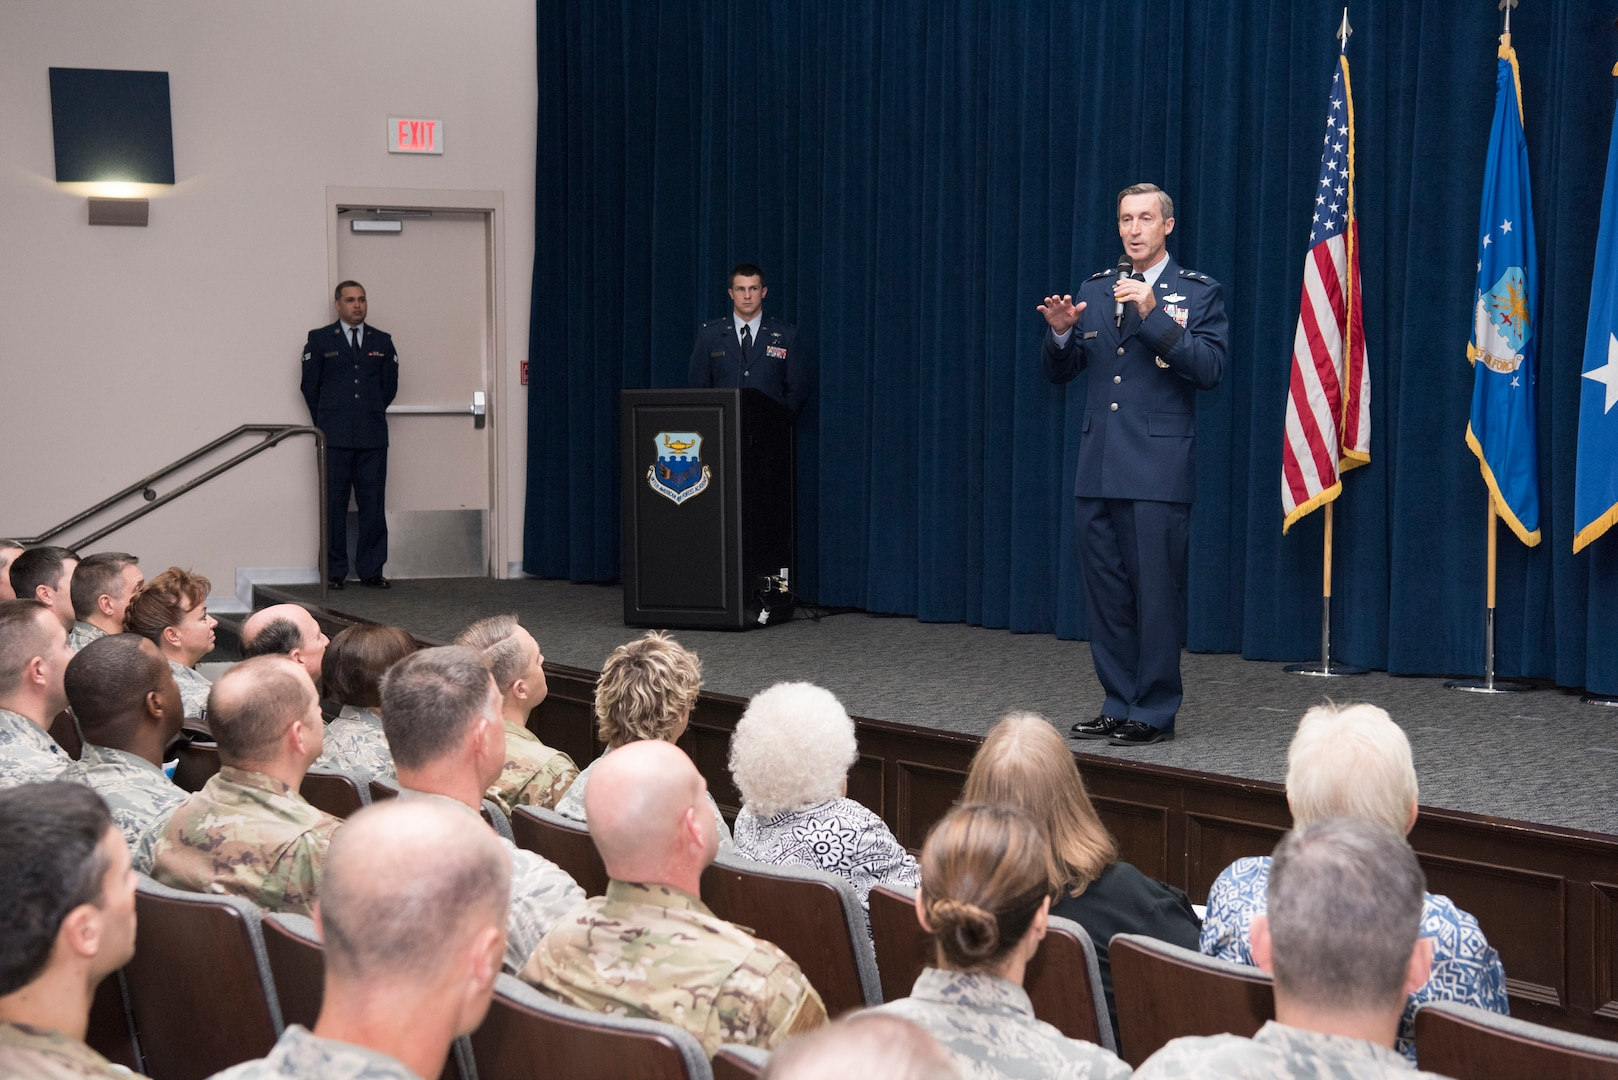 """Maj. Gen. Ronald """"Bruce"""" Miller, 10th Air Force commander, addresses the crowd during a ceremony over which he presided, activating the 960th Cyberspace Wing."""